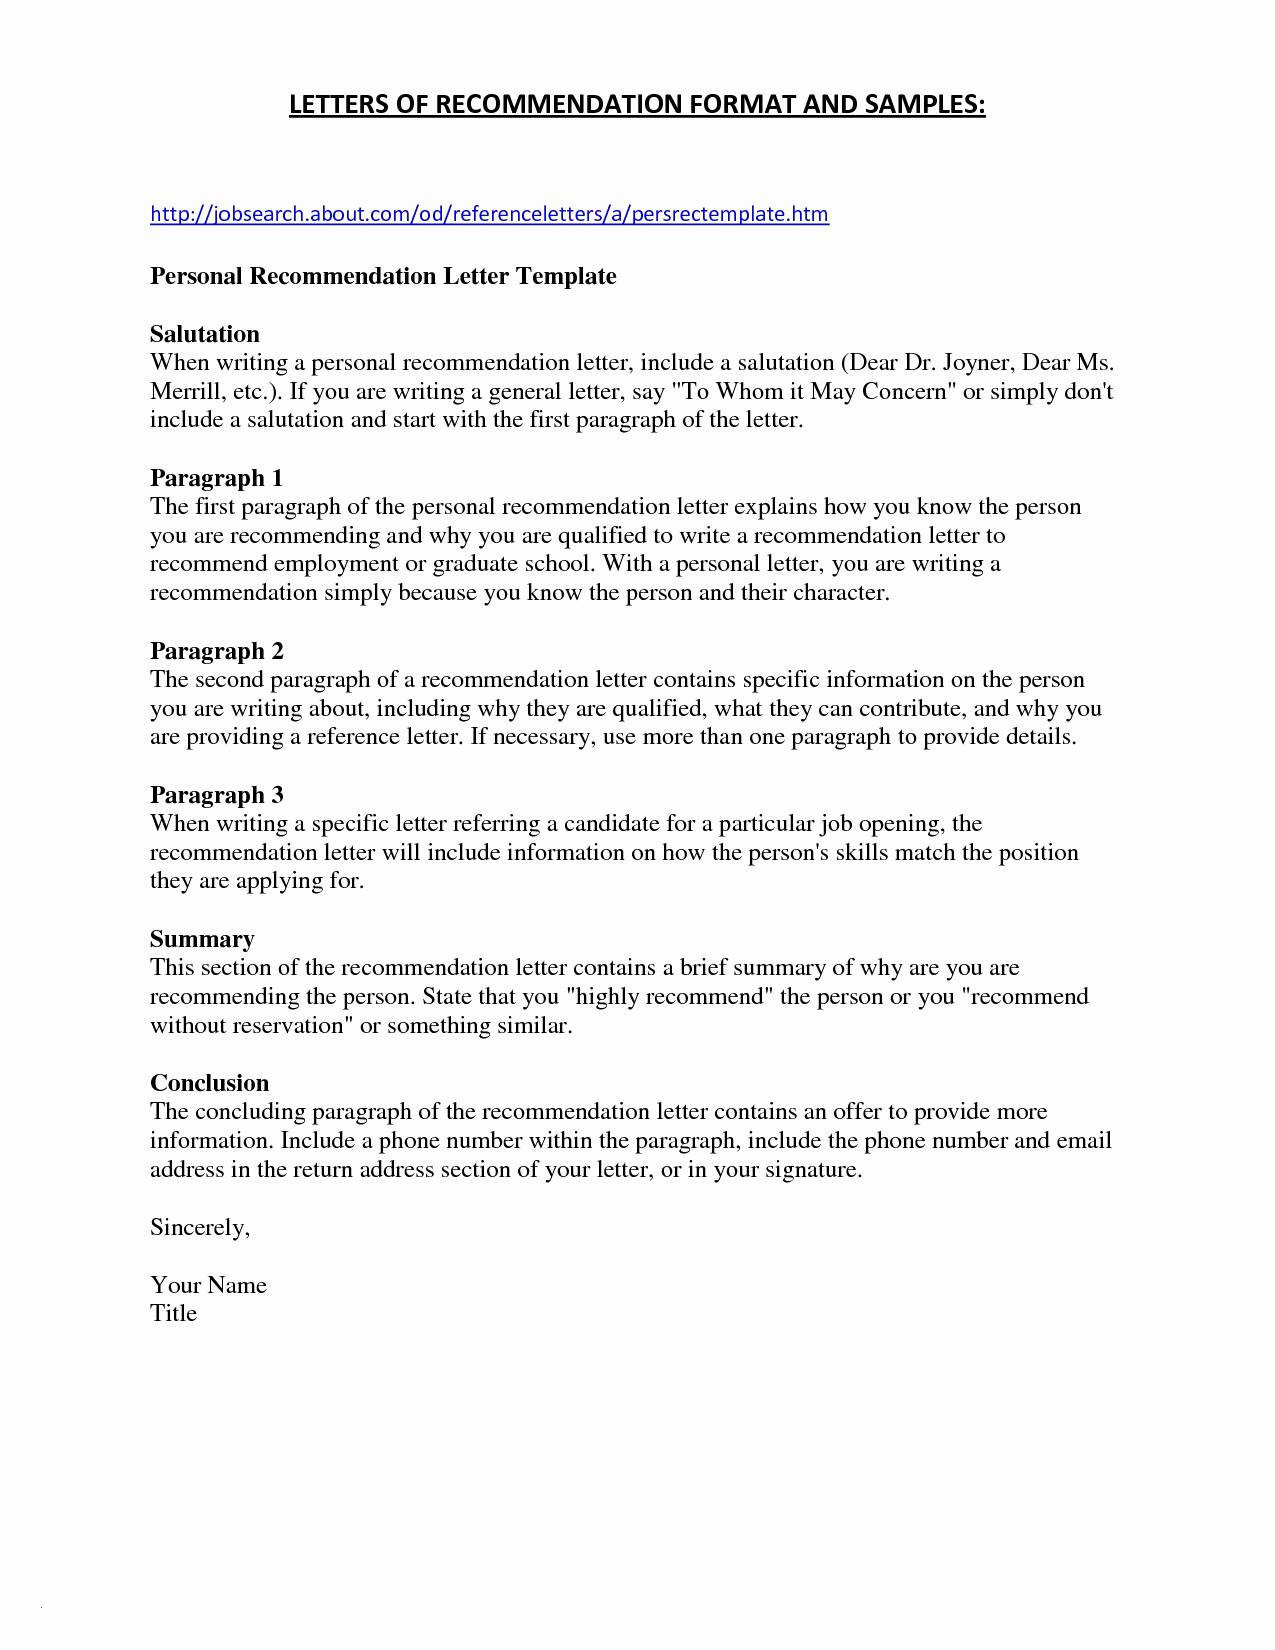 open-office-resume-cover-letter-template-5 Job Application For Bcg Cover Letter on practice management, real or potential, south africa, no experience,